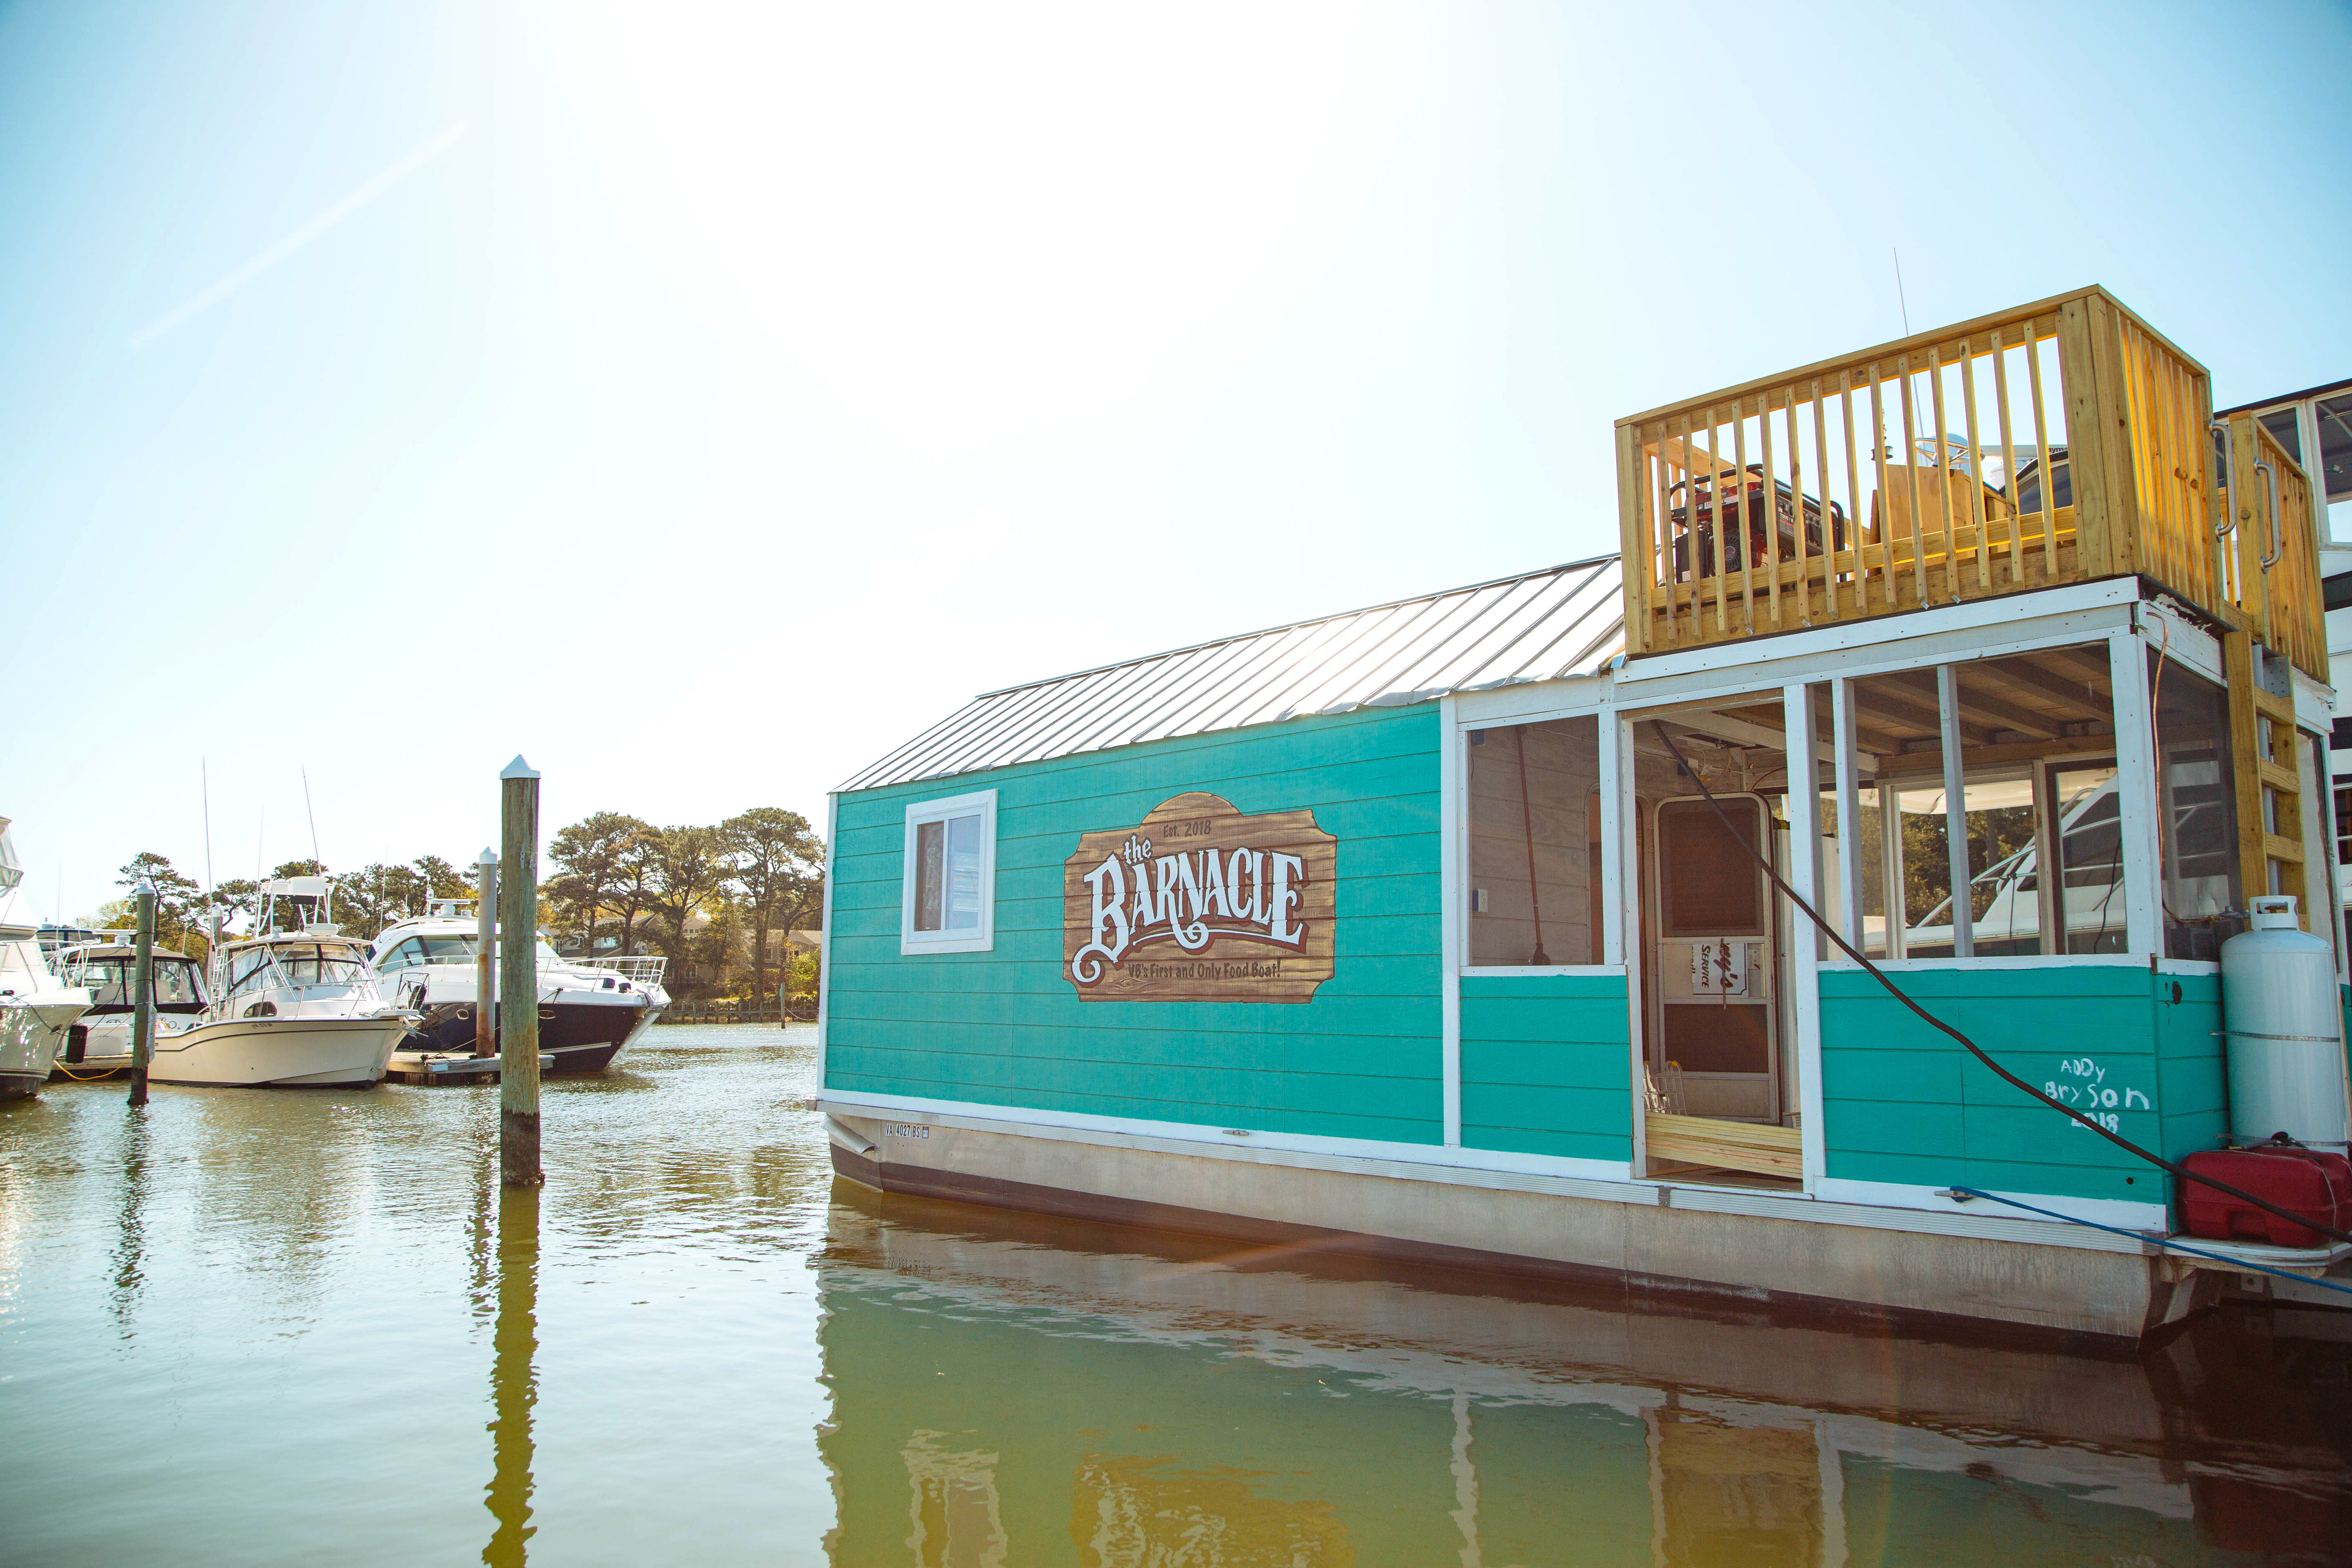 Floating Turquoise Restaurant Opens in Virginia Beach Next Month